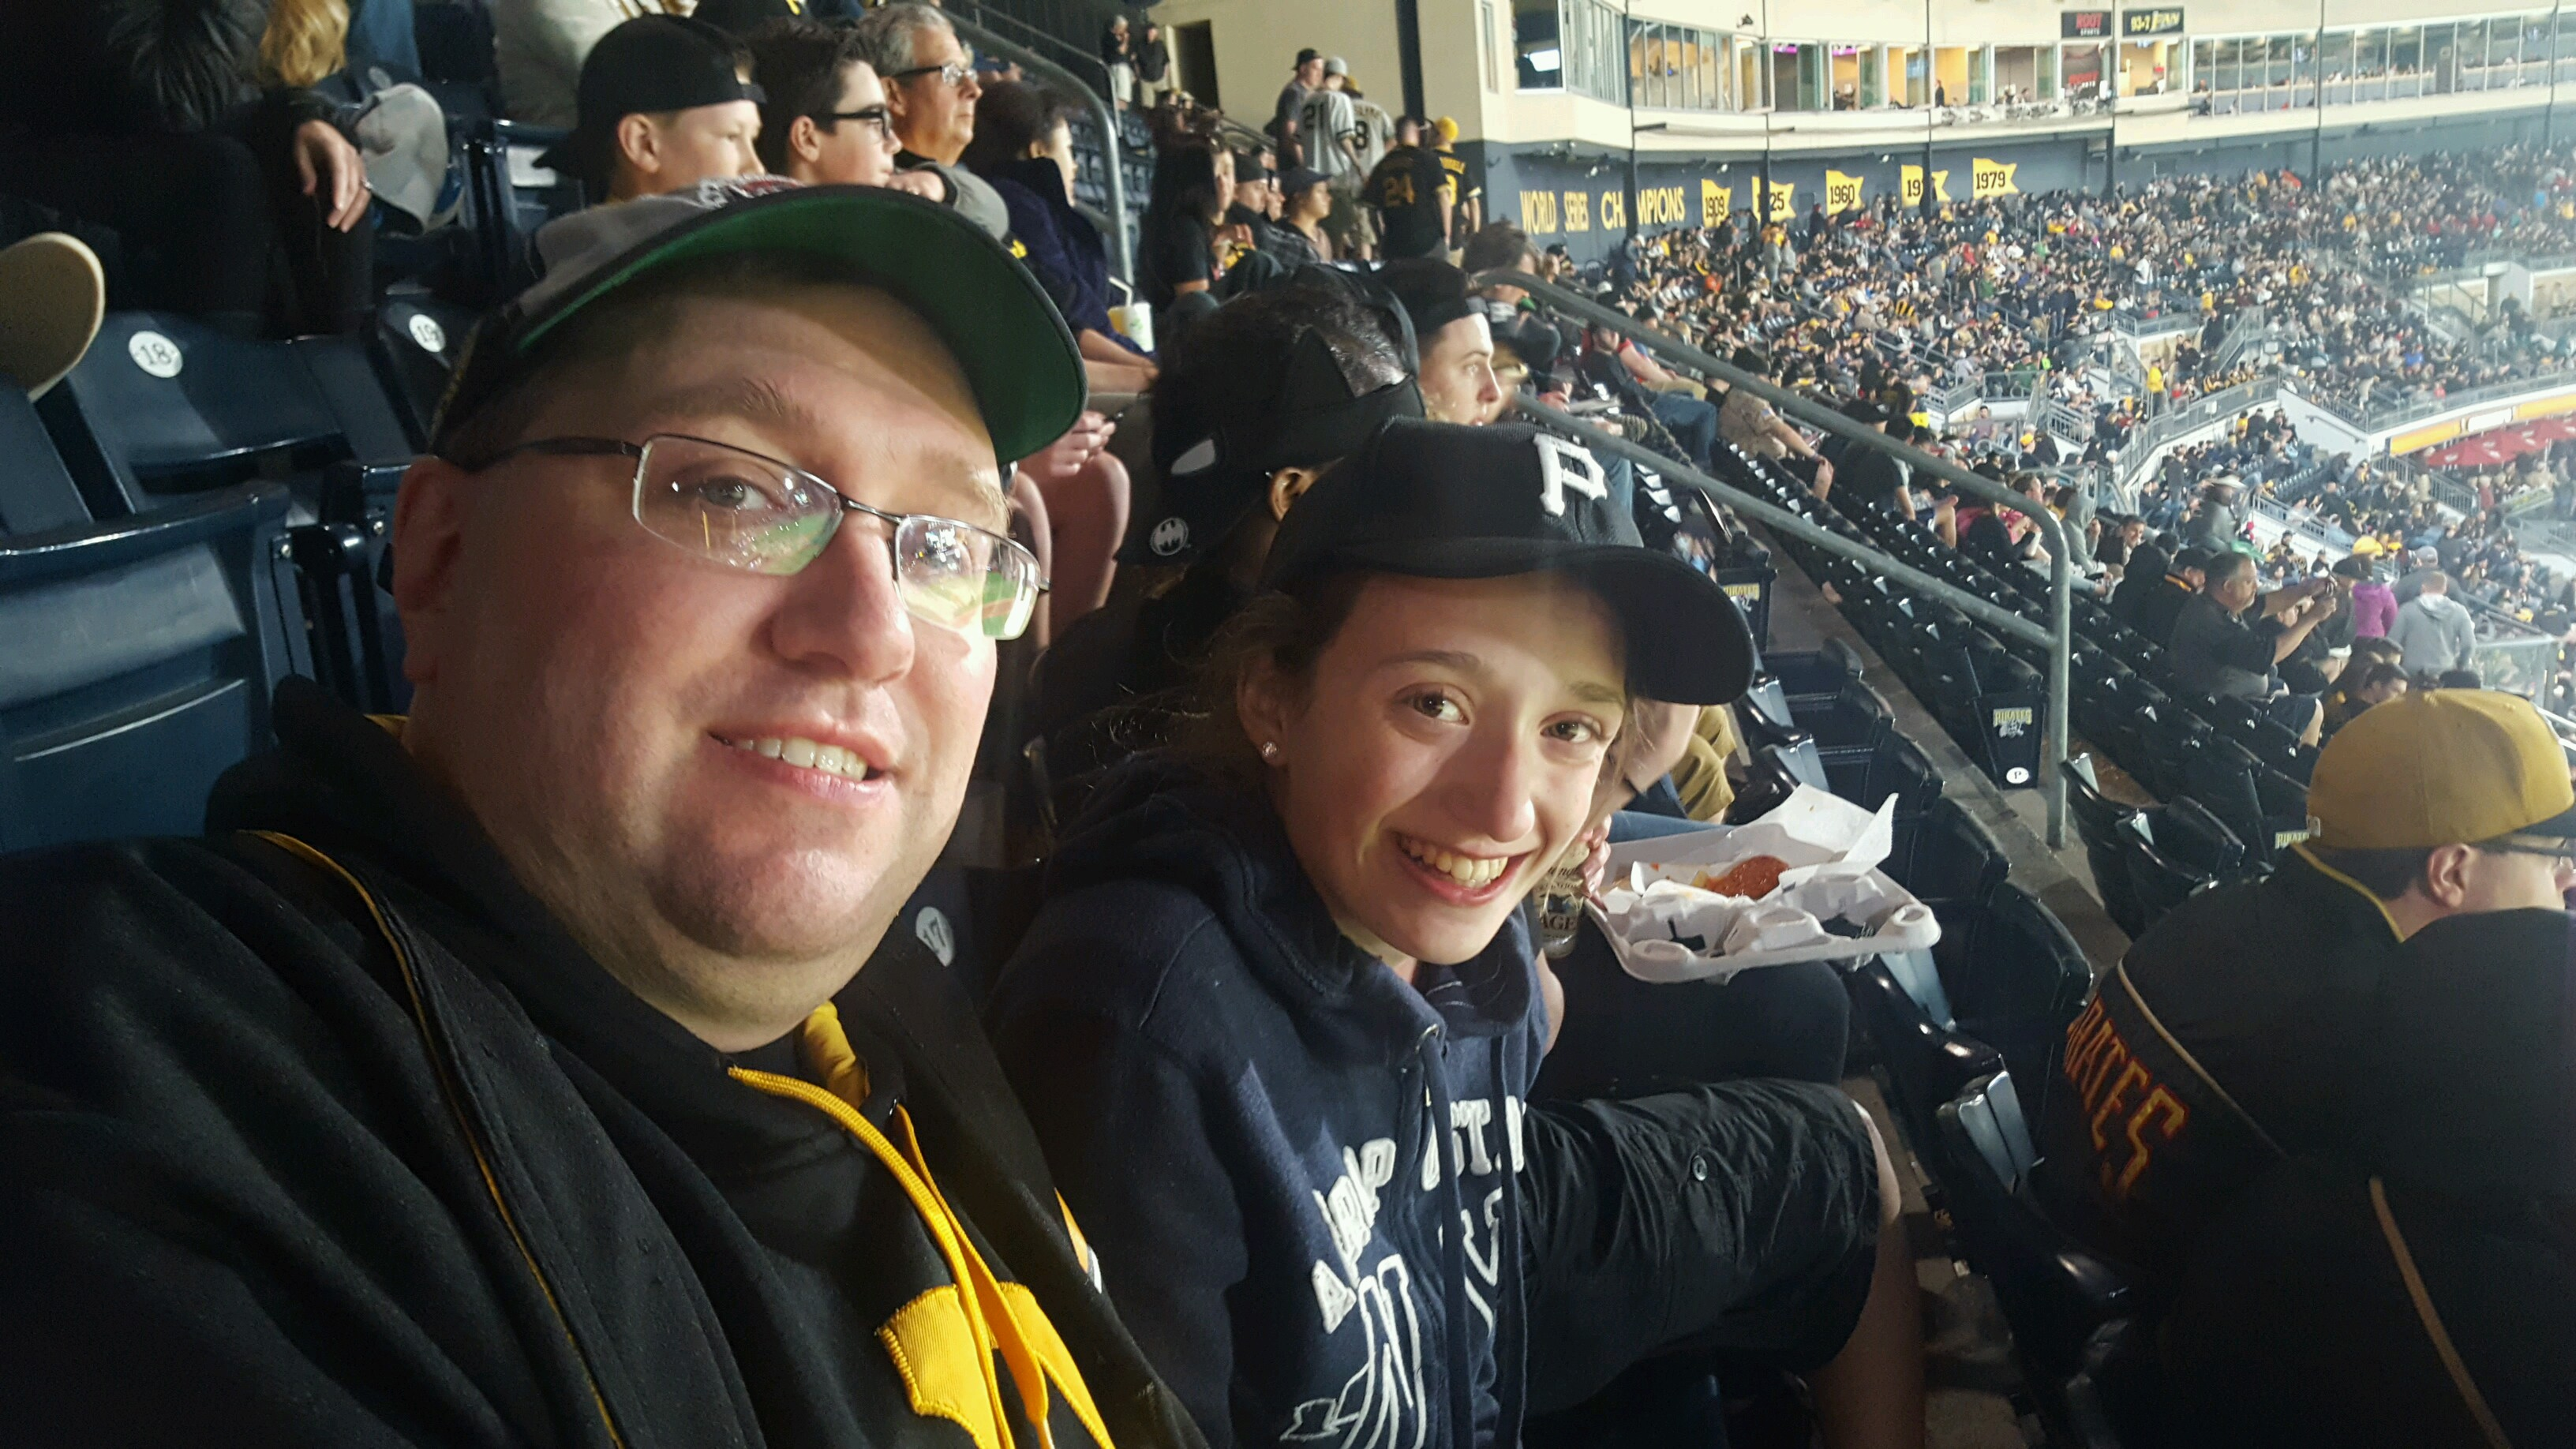 EXPLORE's Chris Rossetti and his goddaughter Madeline Fontana who was part of a group that sang the National Anthem at PNC Park during the Pittsburgh Pirates vs New York Yankees game on Friday night.